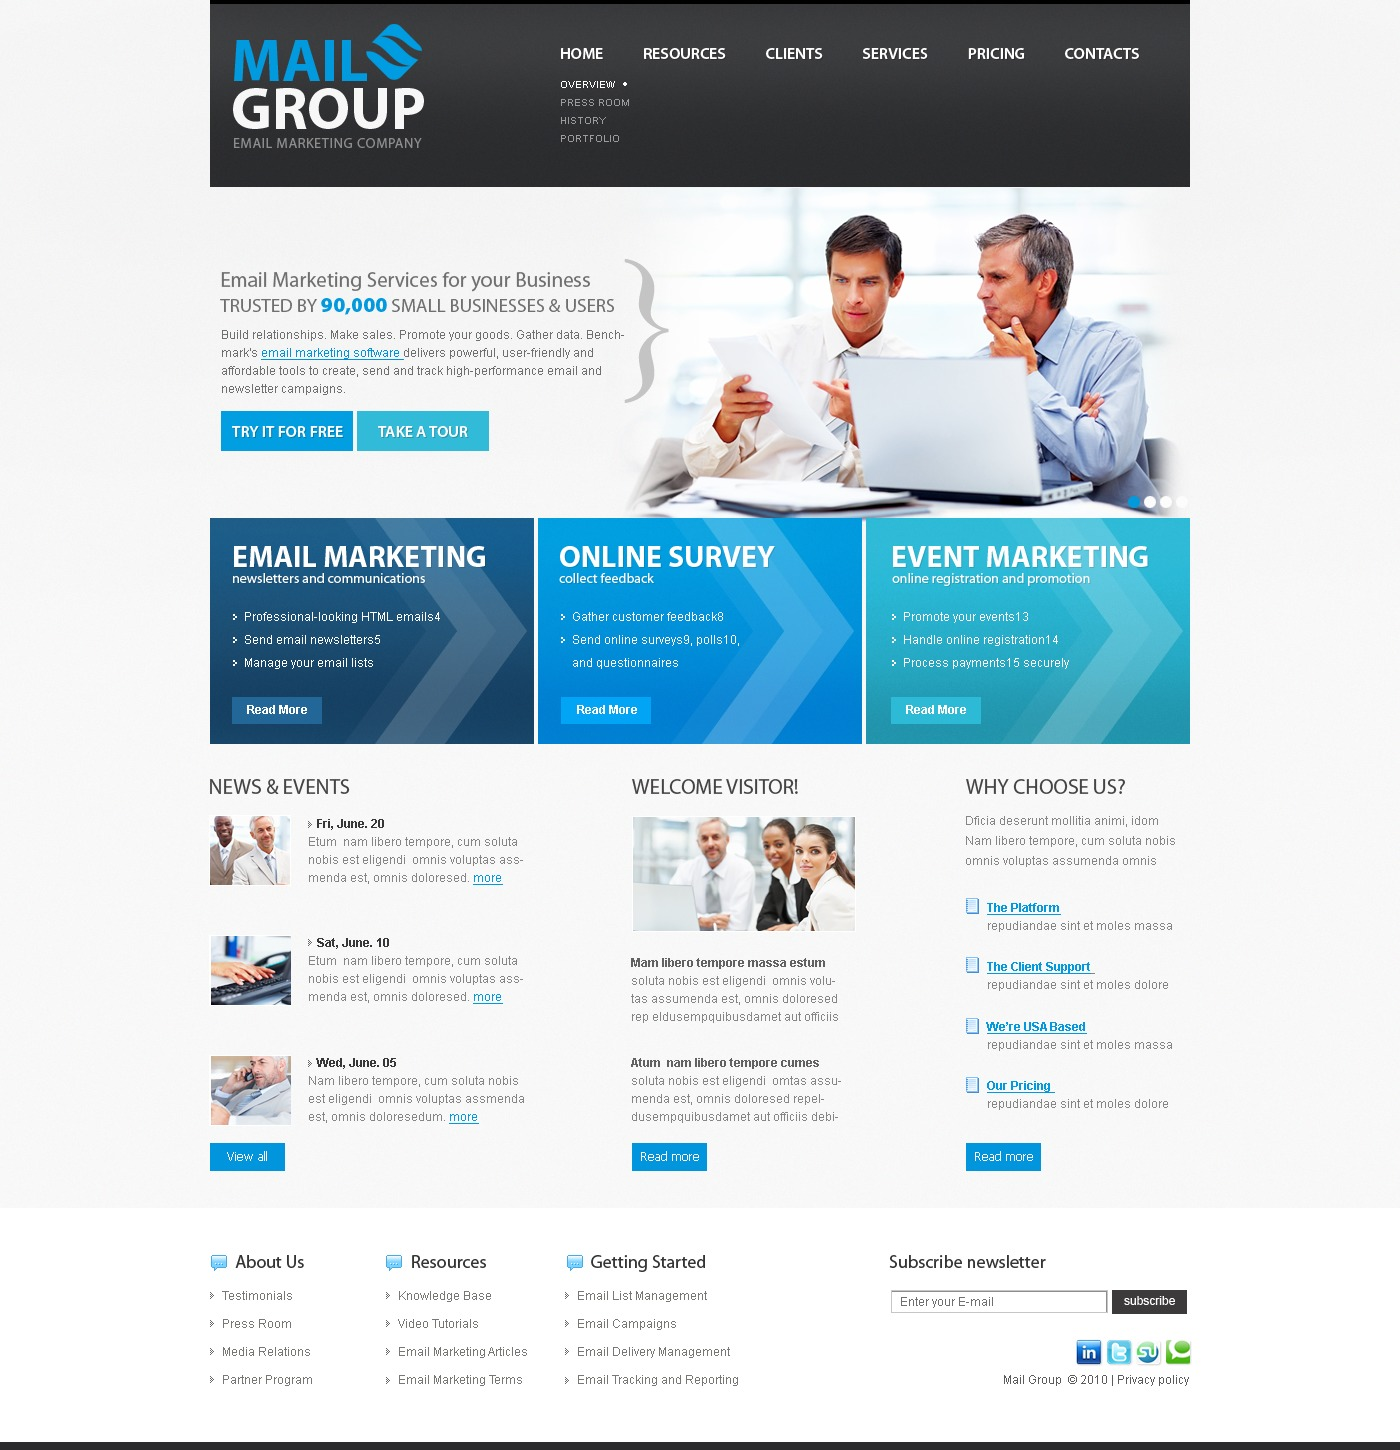 The Mail Group PSD Design 54147, one of the best PSD templates of its kind (business, internet, wide), also known as mail group PSD template, email PSD template, marketing company PSD template, business PSD template, services PSD template, online survey PSD template, events and related with mail group, email, marketing company, business, services, online survey, events, etc.